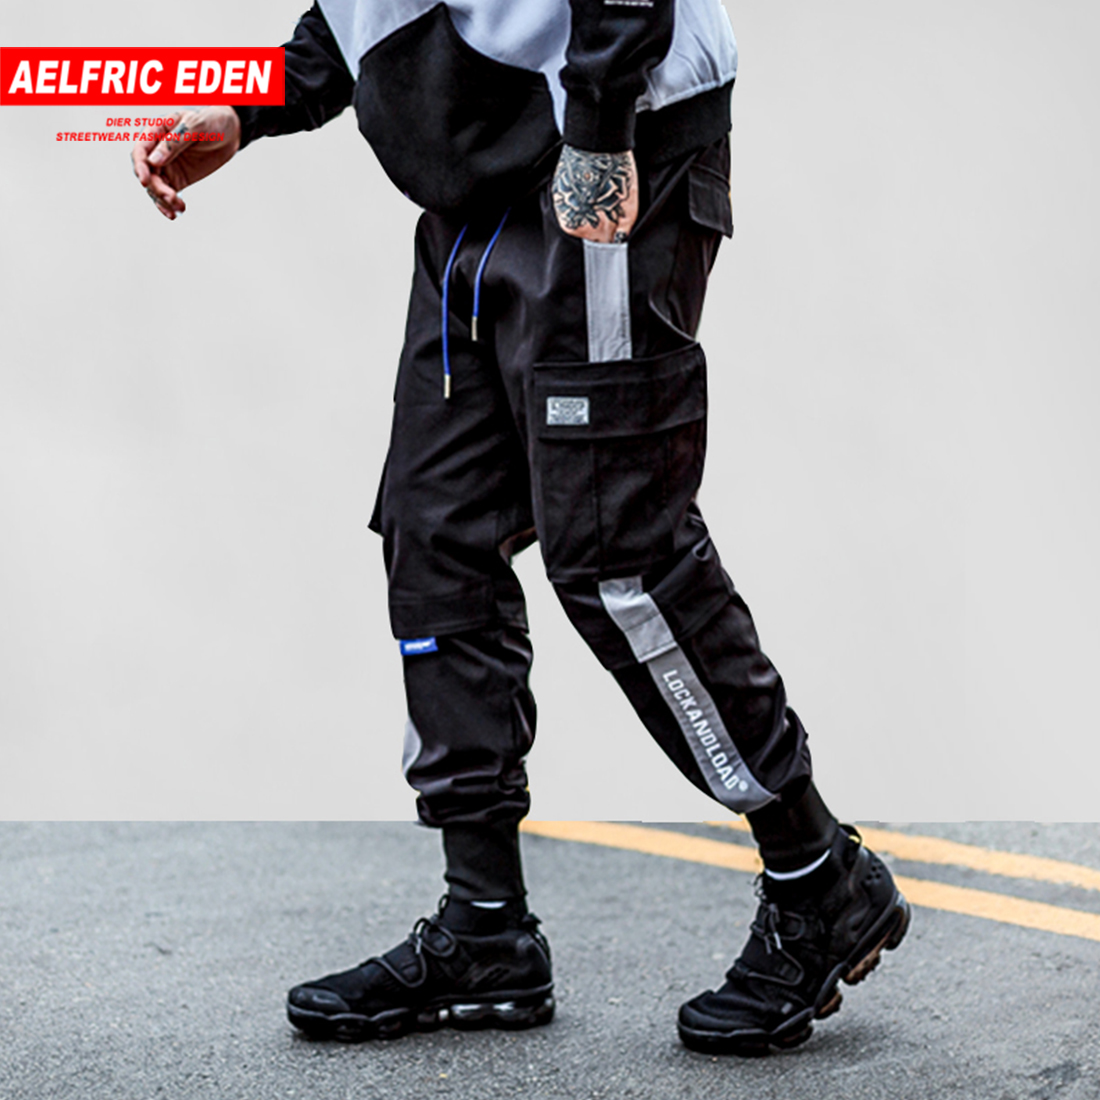 Casual Pants Aelfric Eden Slim-Fit Fashion Joggers Streetwear Harajuku Hip-Hop Ankle-Length